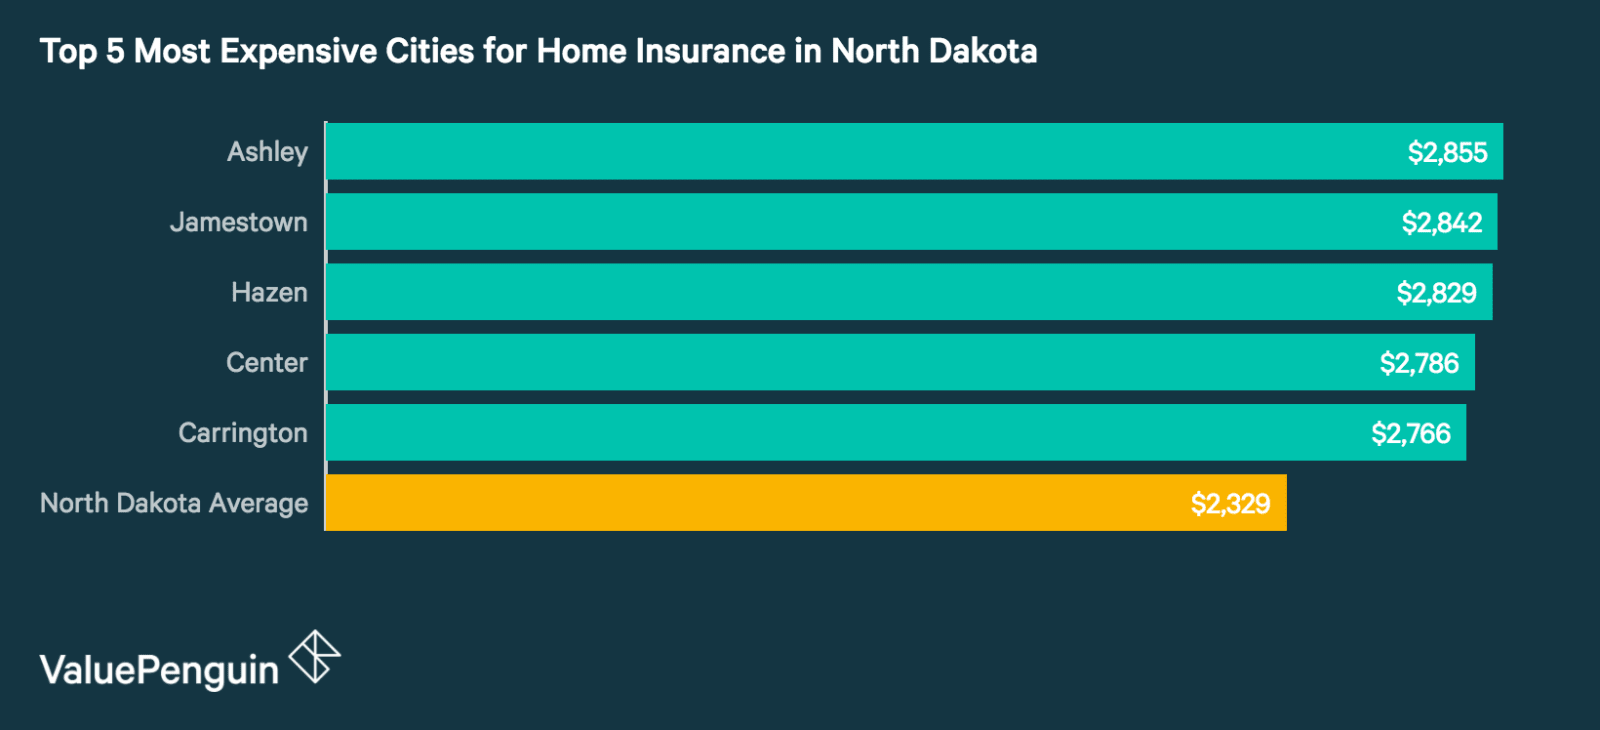 Top 5 Most Expensive Cities in North Dakota for Homeowners Insurance